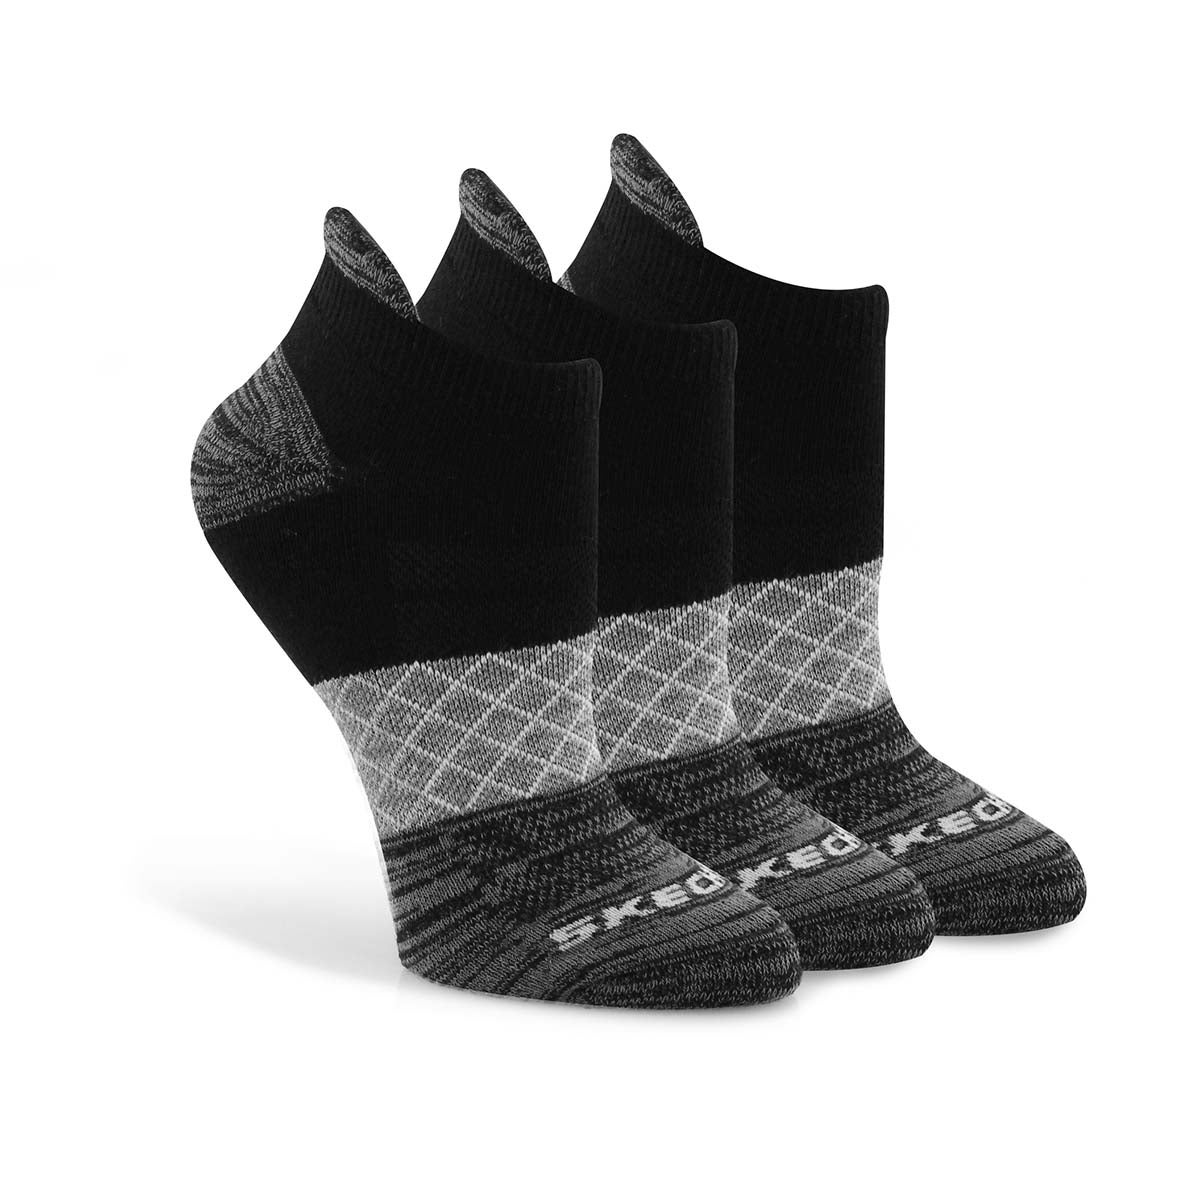 Lds Half Terry Low Cut blk/pnk socks 3pk